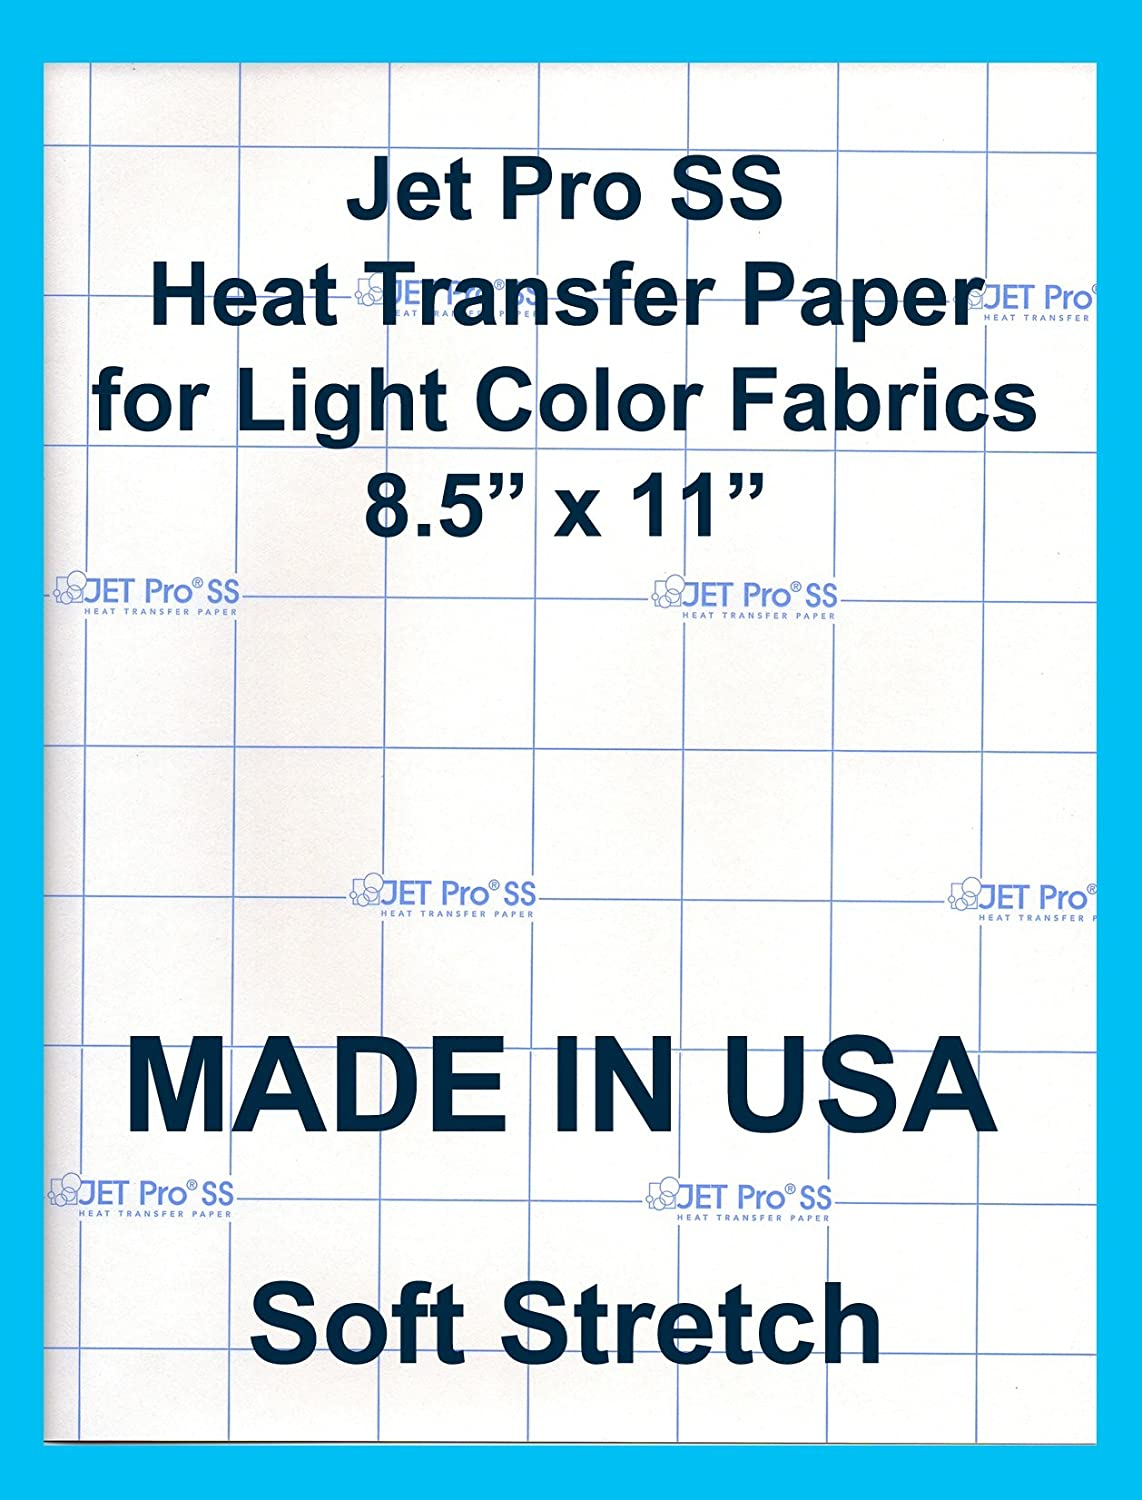 "Amazon.com : Jet-Pro SofStretch Inkjet Heat Transfer Paper 8.5""x11""  (50sheets) : Fabric Iron On Transfers : Office Products"